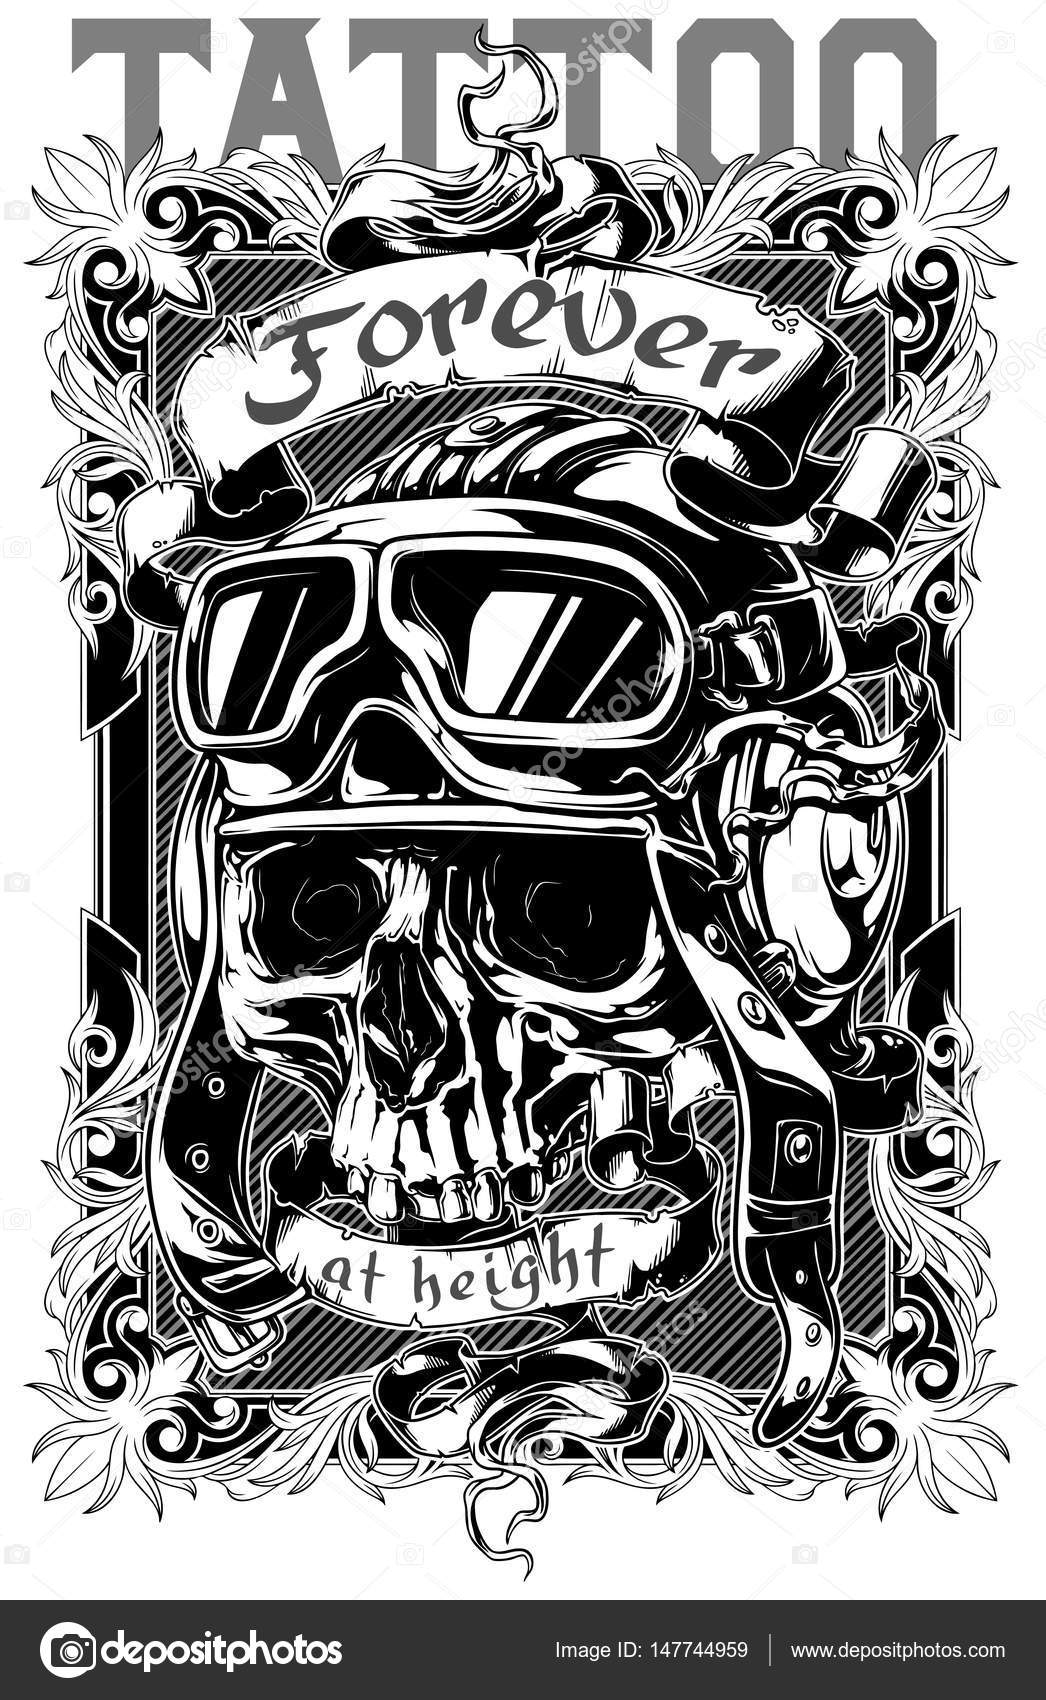 Poster design drawing - A Vector Illustration Of Graphic Tattoo Poster Design With Retro Skull In Pilot Helmet And Text Vector By Gb_art